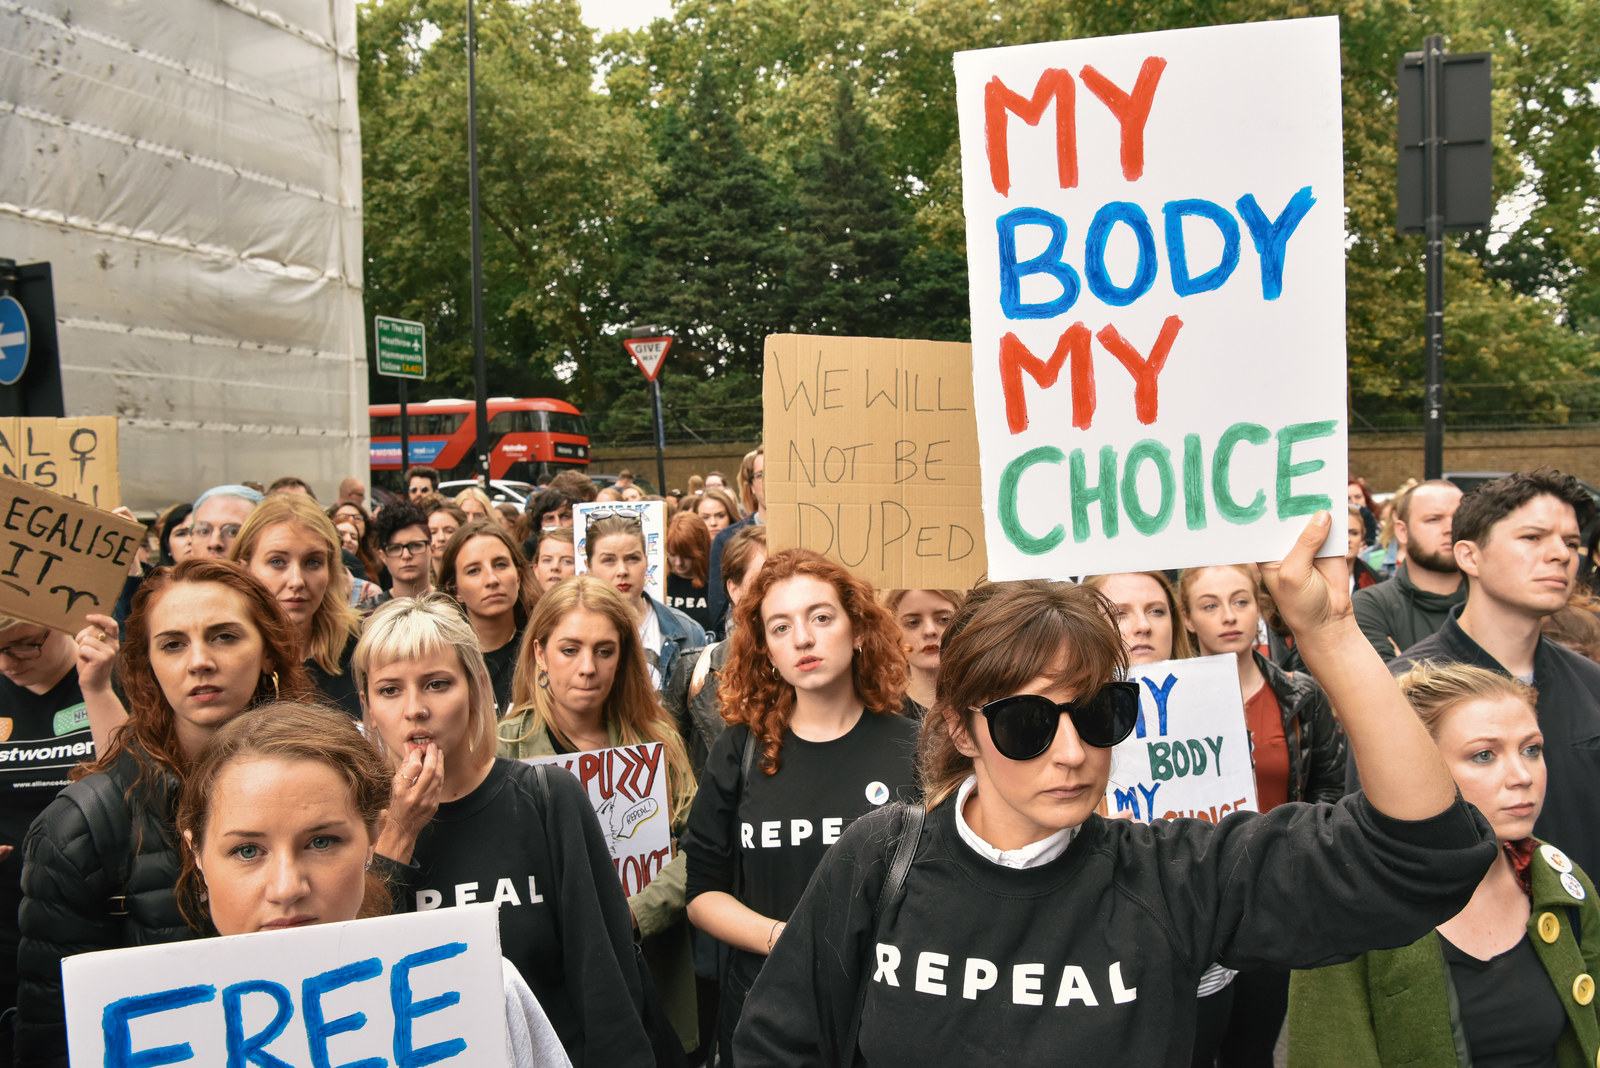 British women are buying abortion pills online – and could face life imprisonment